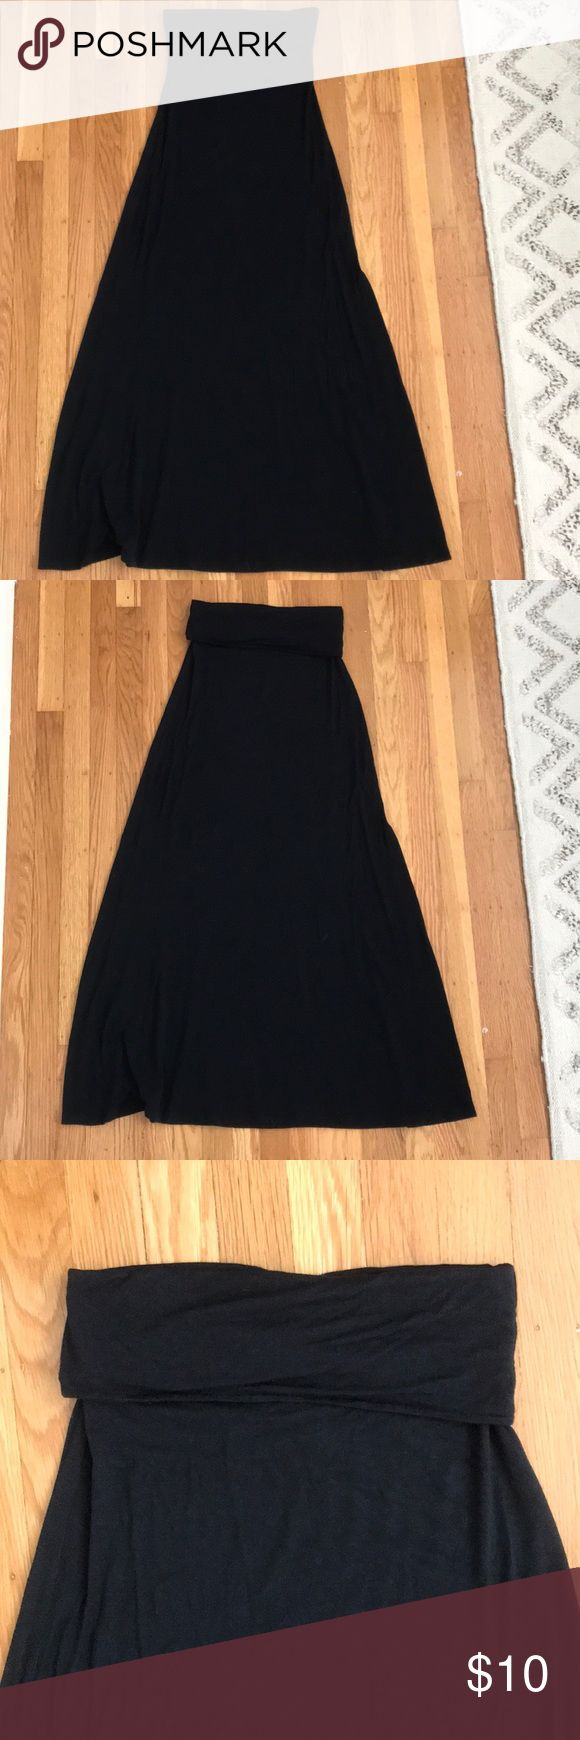 Black maxi skirt from Nordstrom Black maxi skirt in soft lightweight knit fabrication.  Can rollover waistband which has cute ruched detail.  Easy for travel. Great for hot summer days. I wore it as a high waist paired with a crop top (also for sale).  93%modal/7%spandex.  Hand wash -  flat dry - cool iron or steam.  Not altered. Nordstrom Skirts Maxi